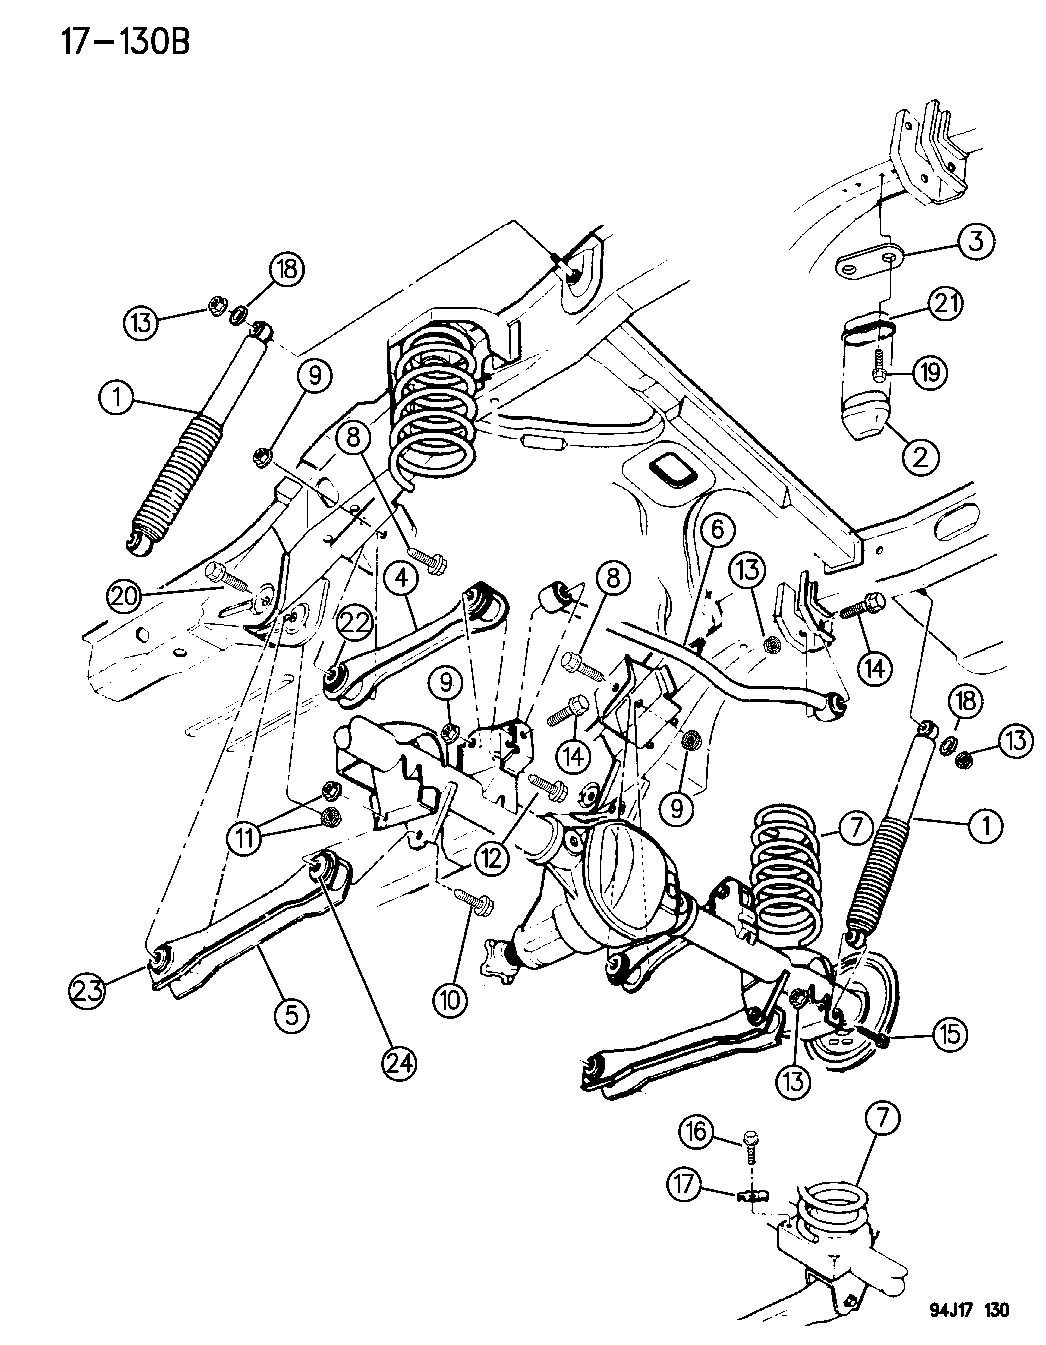 2001 Dodge Stratus Exhaust System Diagram